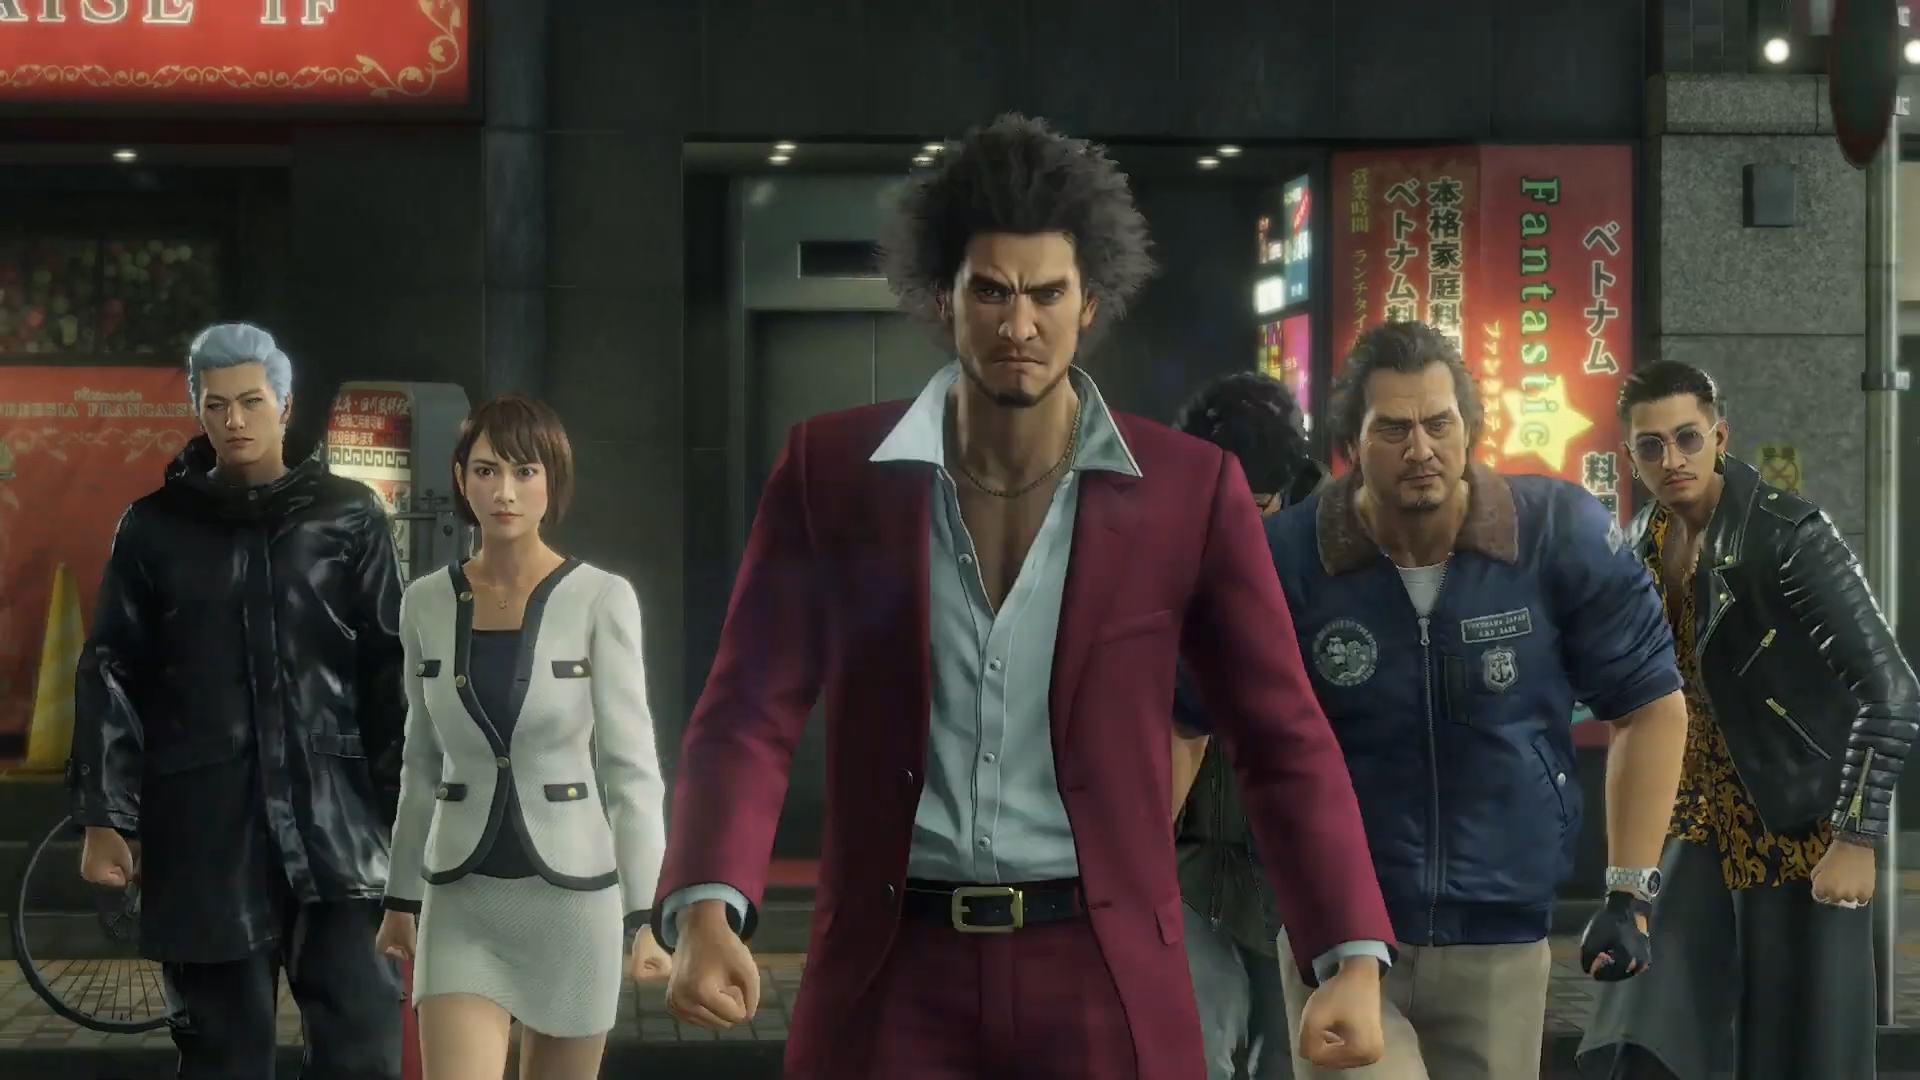 The cast of Yakuza: Like a Dragon marches toward the camera.